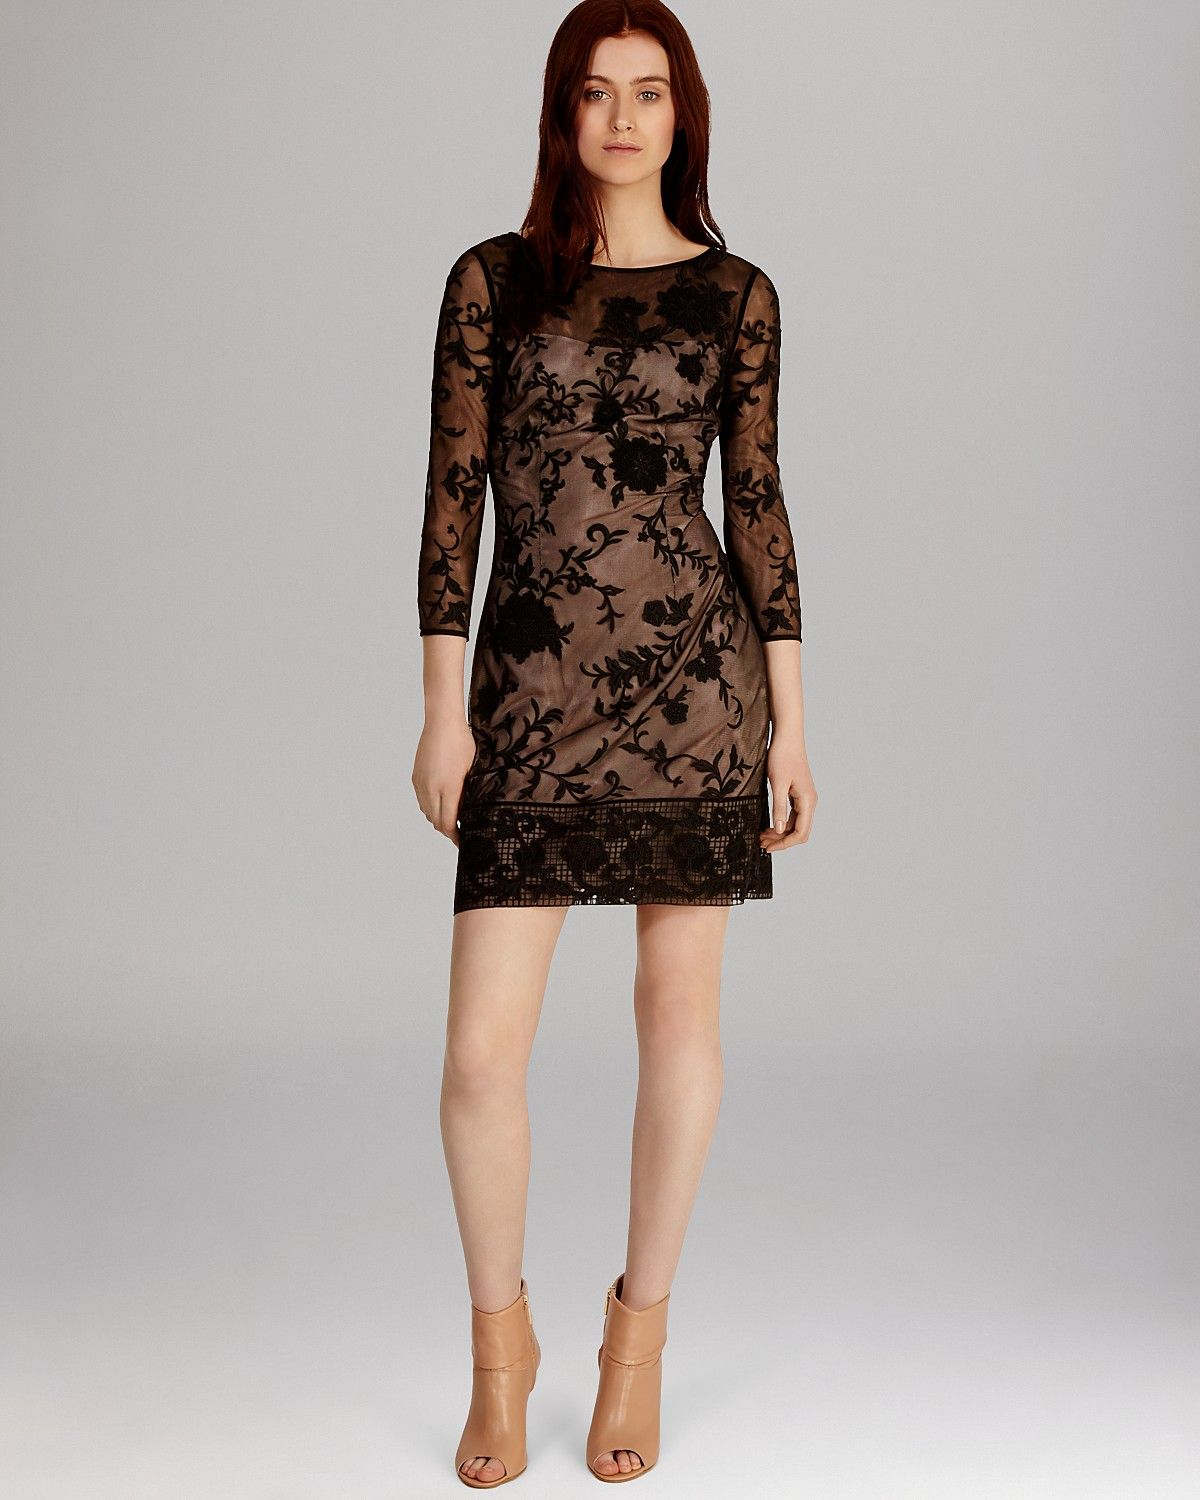 floral embroidered tulle dresses | KAREN MILLEN Dress - Modern Floral Embroidered Tulle Collection